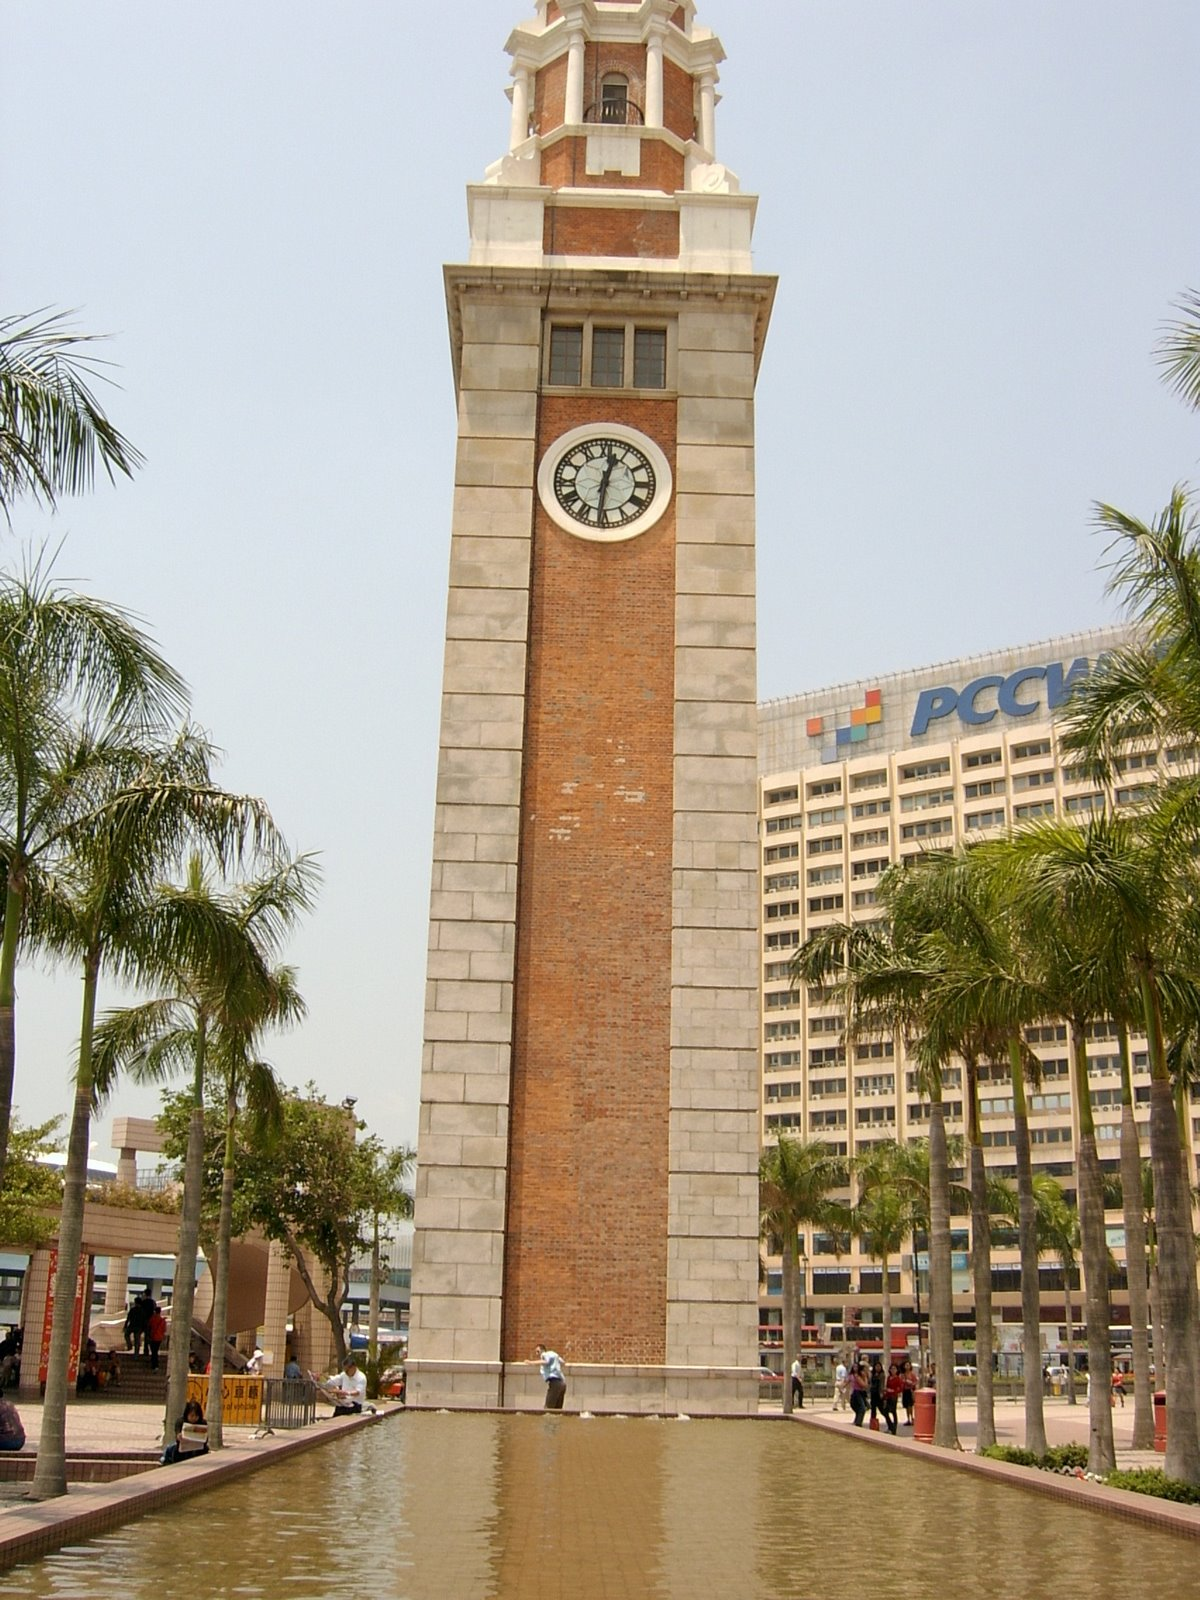 [The+clock+tower+from+Project+A+was+the+first+thing+I+sought+out+in+Hong+Kong,+though+I+don]